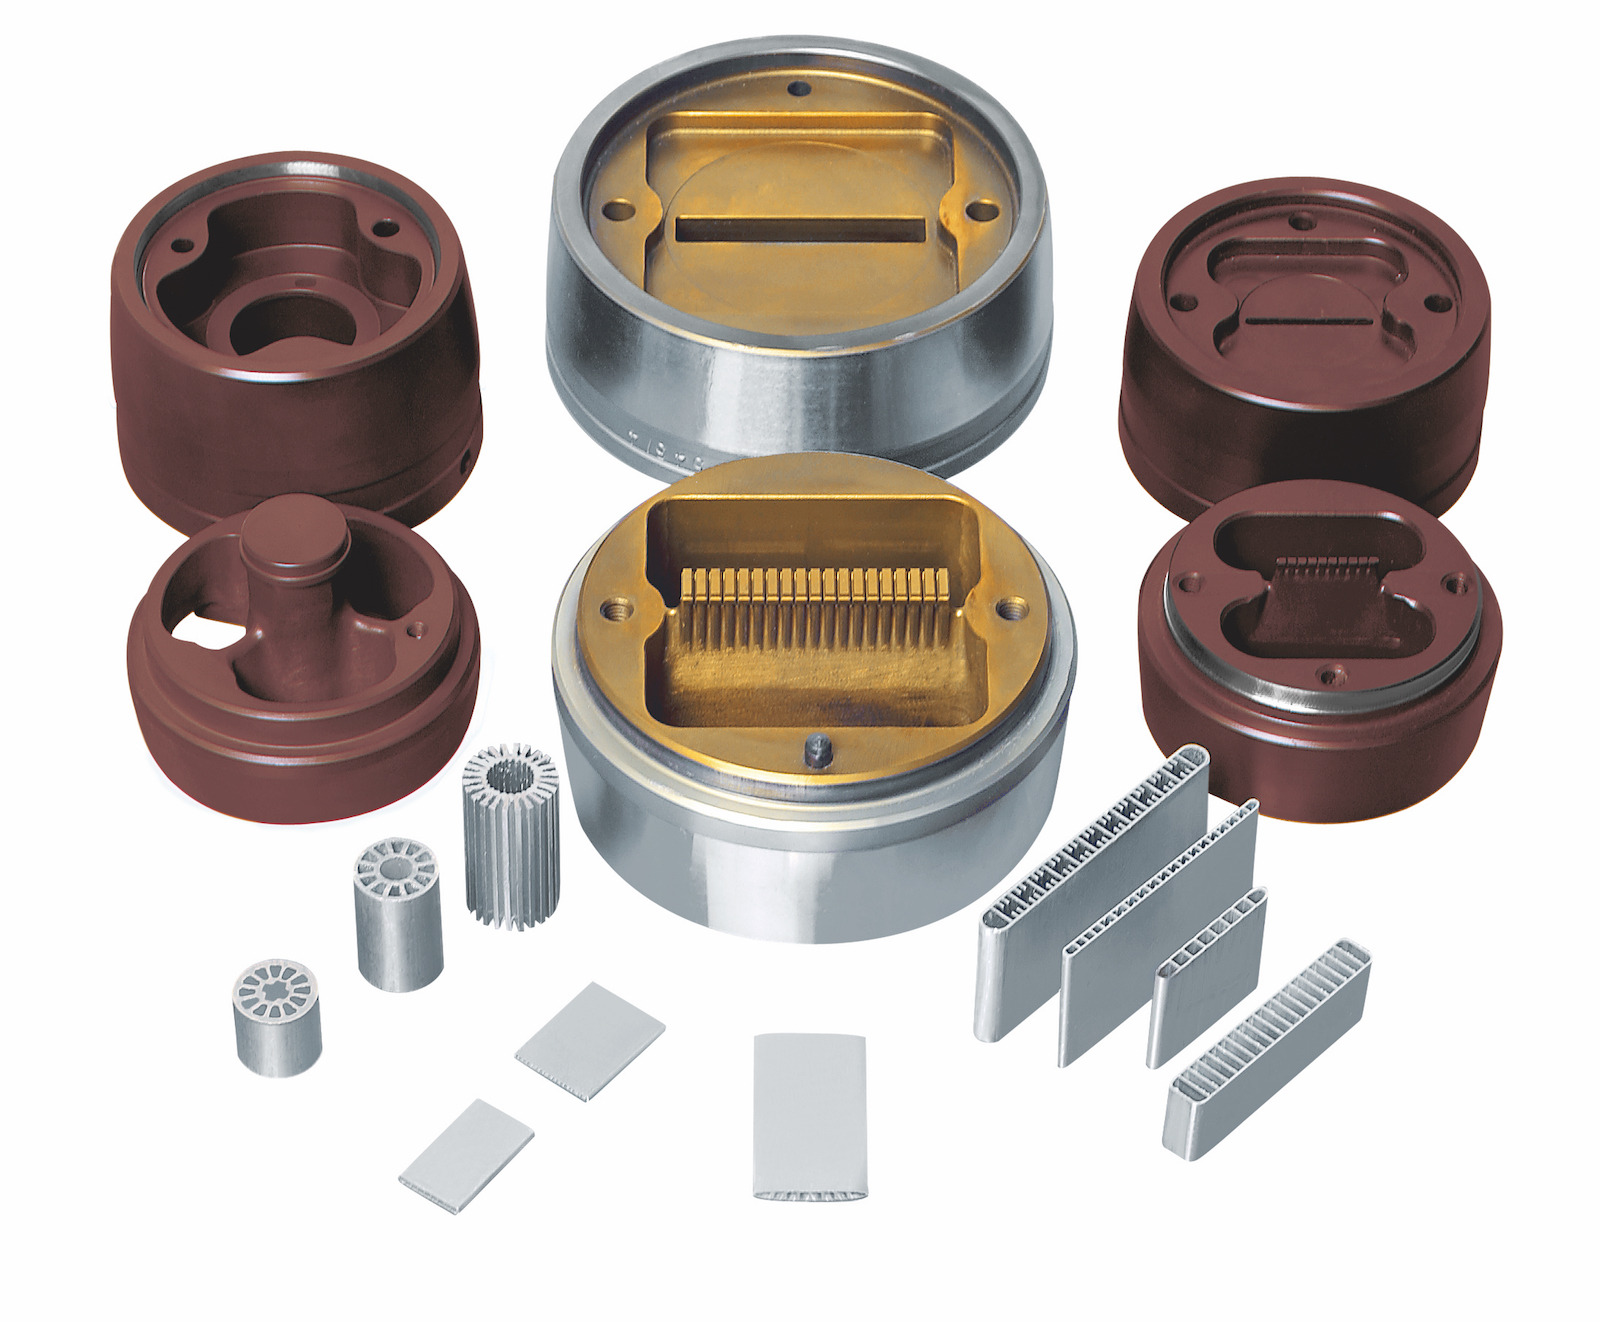 WEFA CVD coated extrusion dies or CEDs for production of multiport and micro-multiport hollow and heat exchanger tube aluminum extrusions (front/bottom).